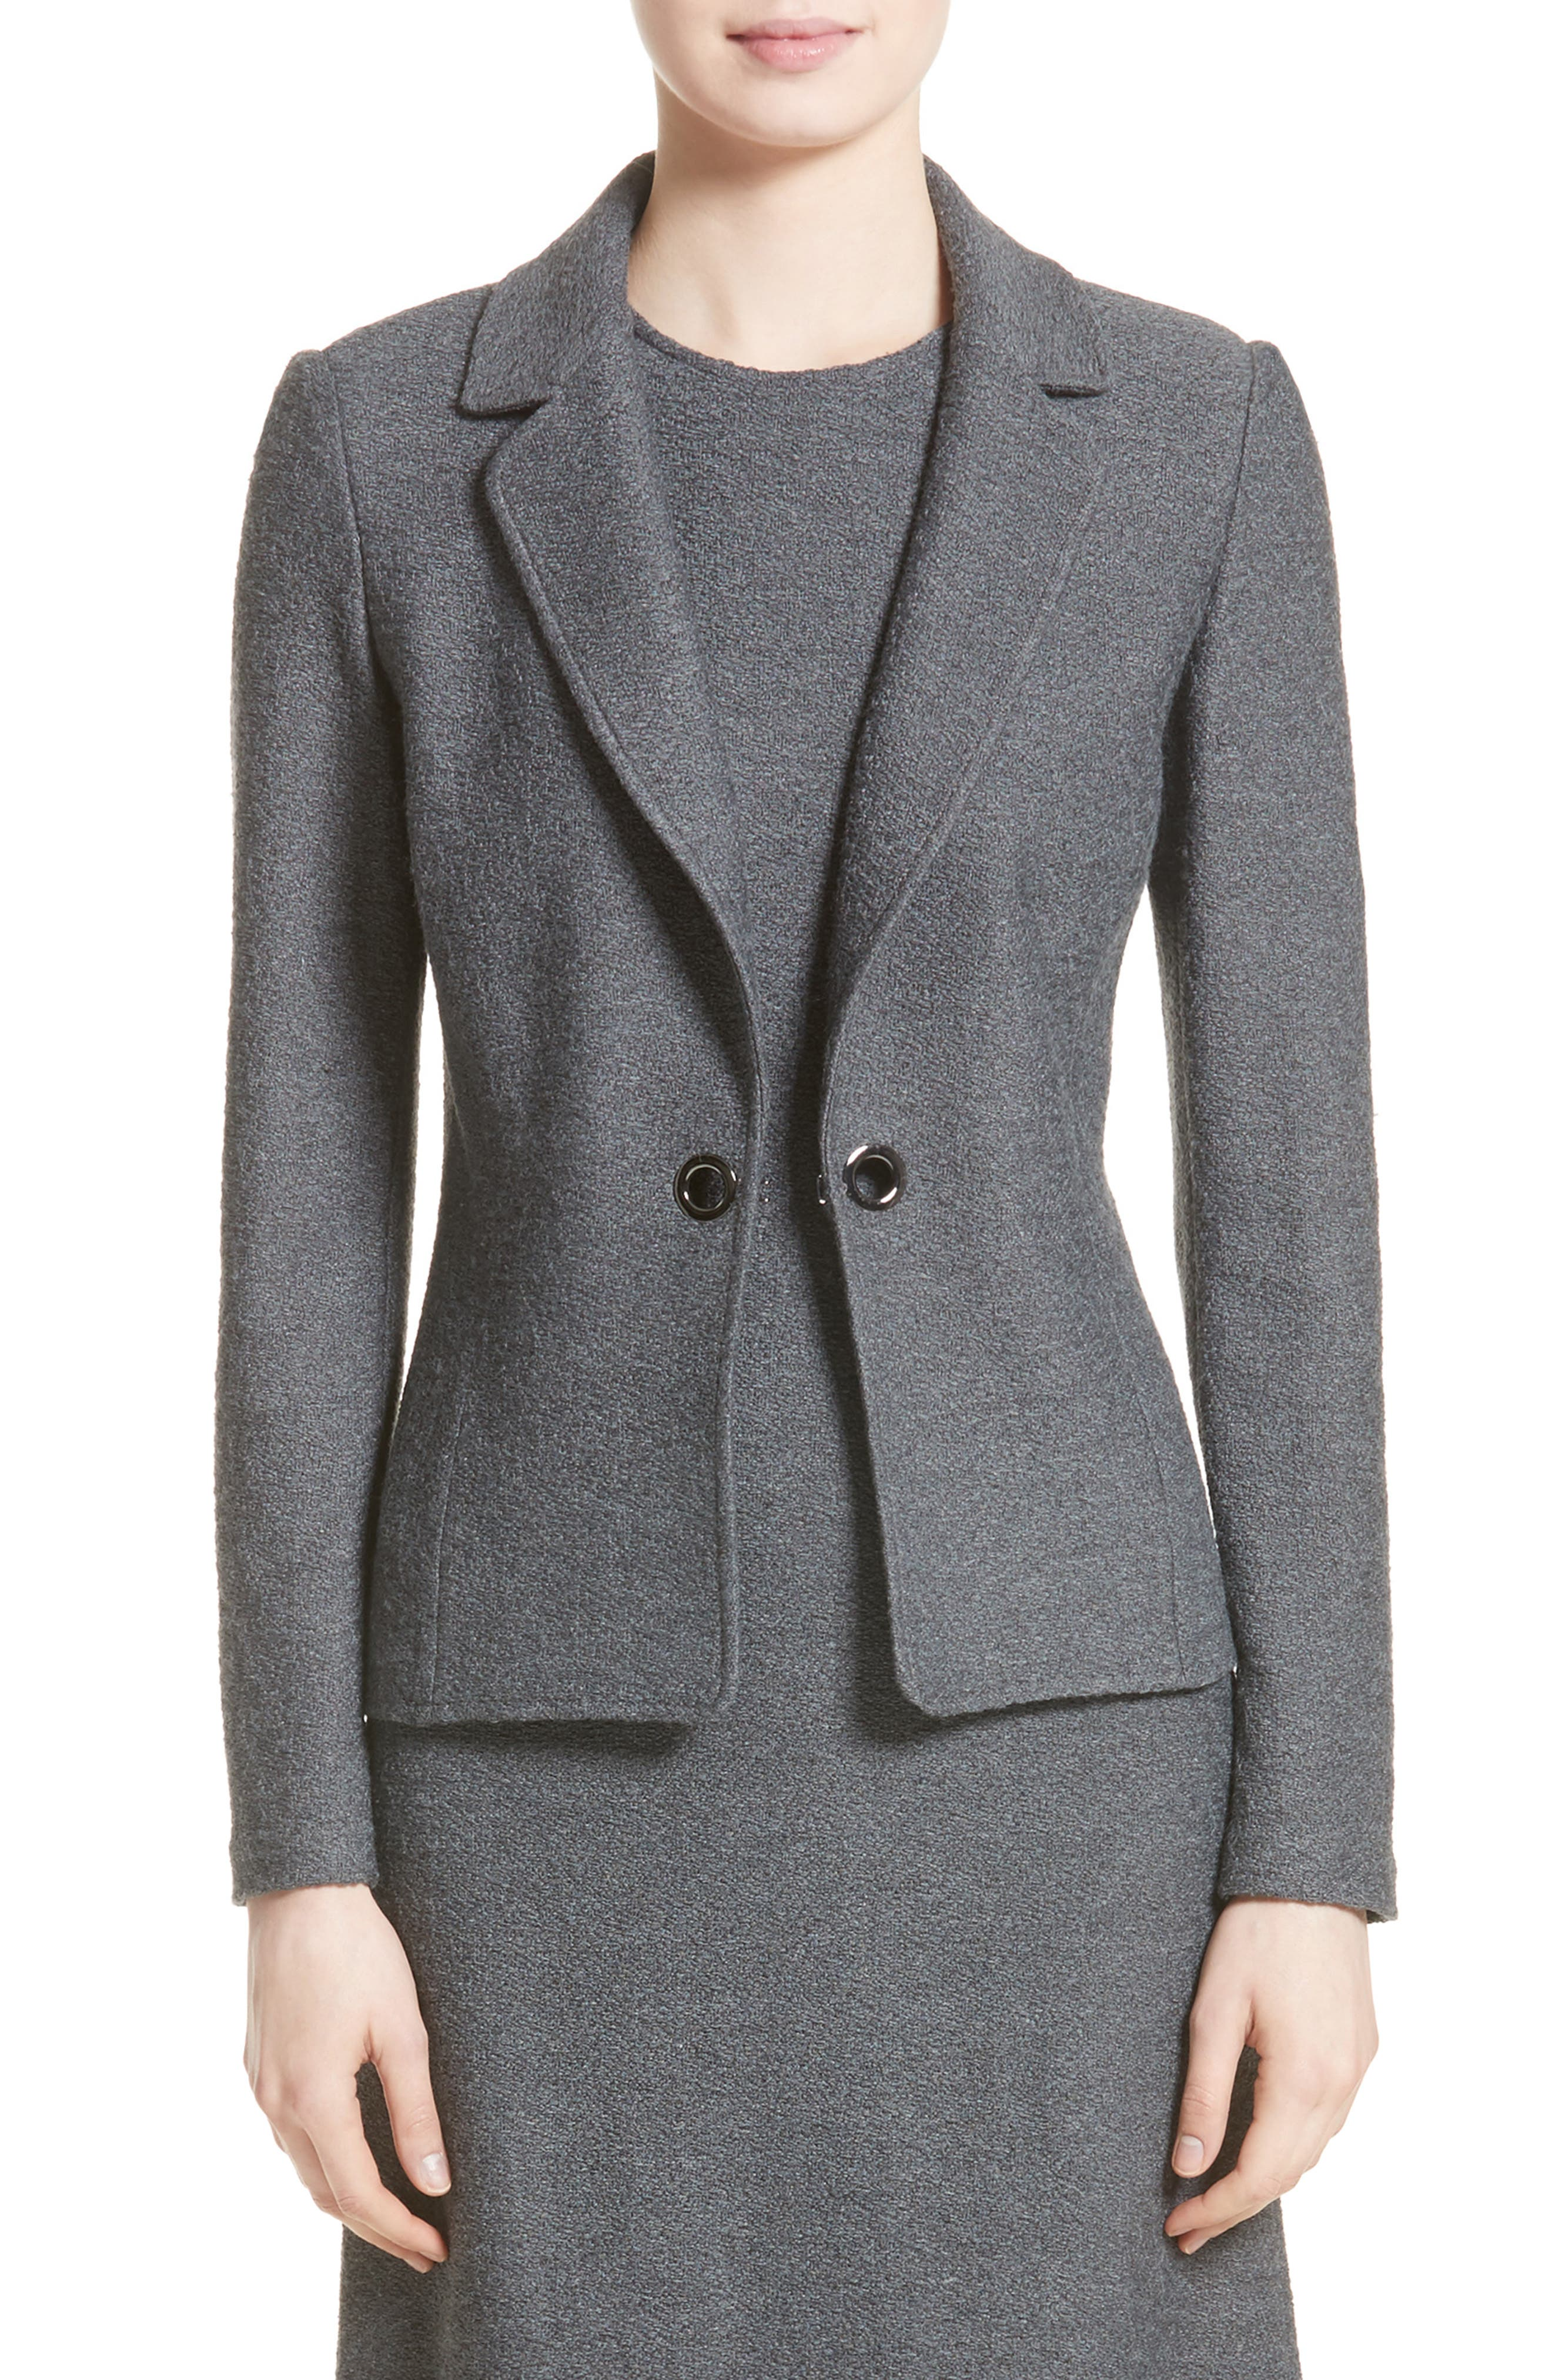 Alternate Image 1 Selected - St. John Collection Clair Grommet Detail Knit Jacket